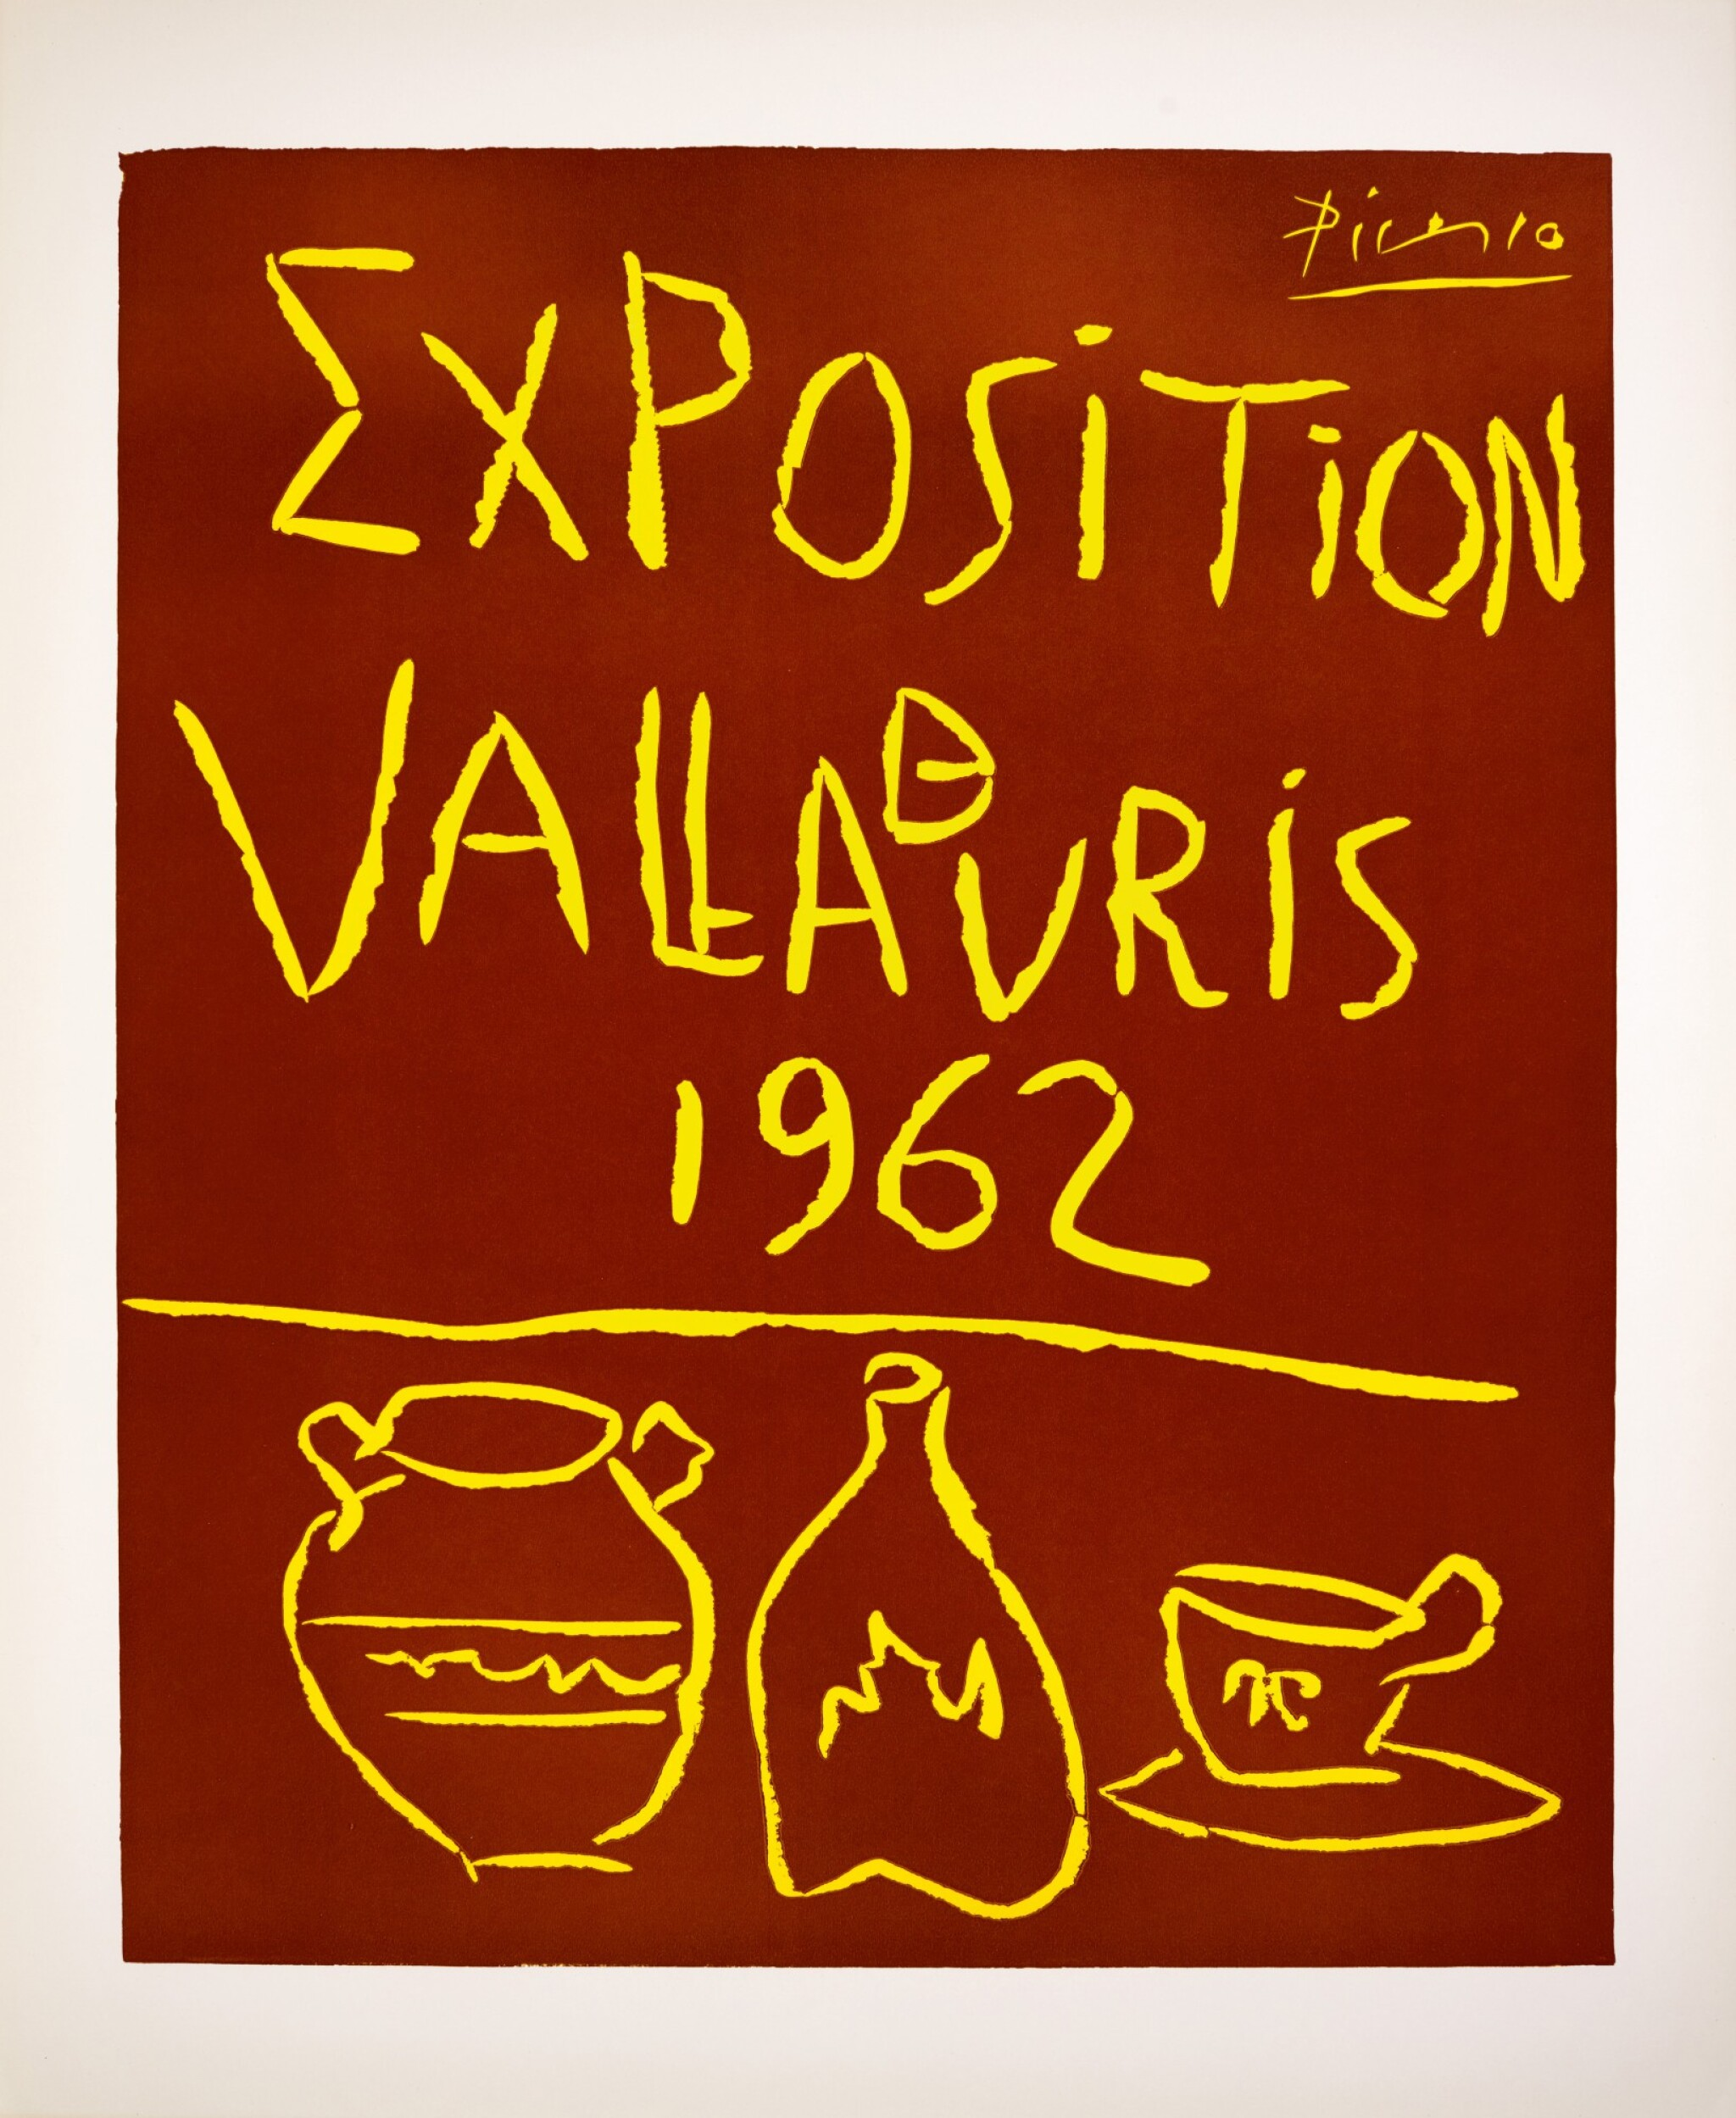 View full screen - View 1 of Lot 113. PABLO PICASSO | EXPOSITION VALLAURIS 1962 (B. 1299; BA. 1335; CZW. 49).